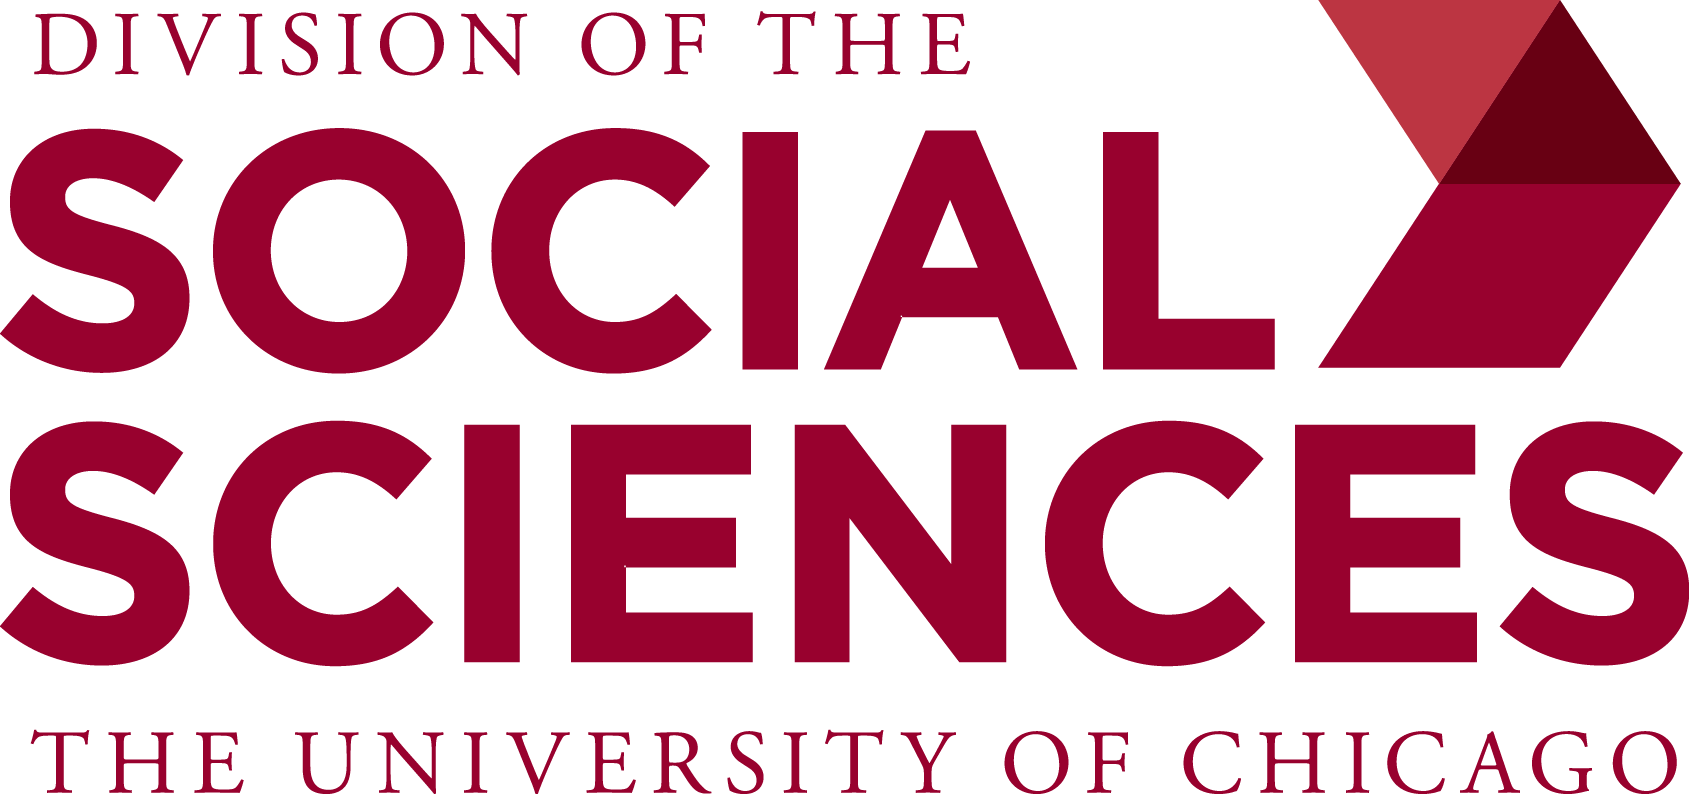 Logo:  The University of Chicago Division of the Social Sciences